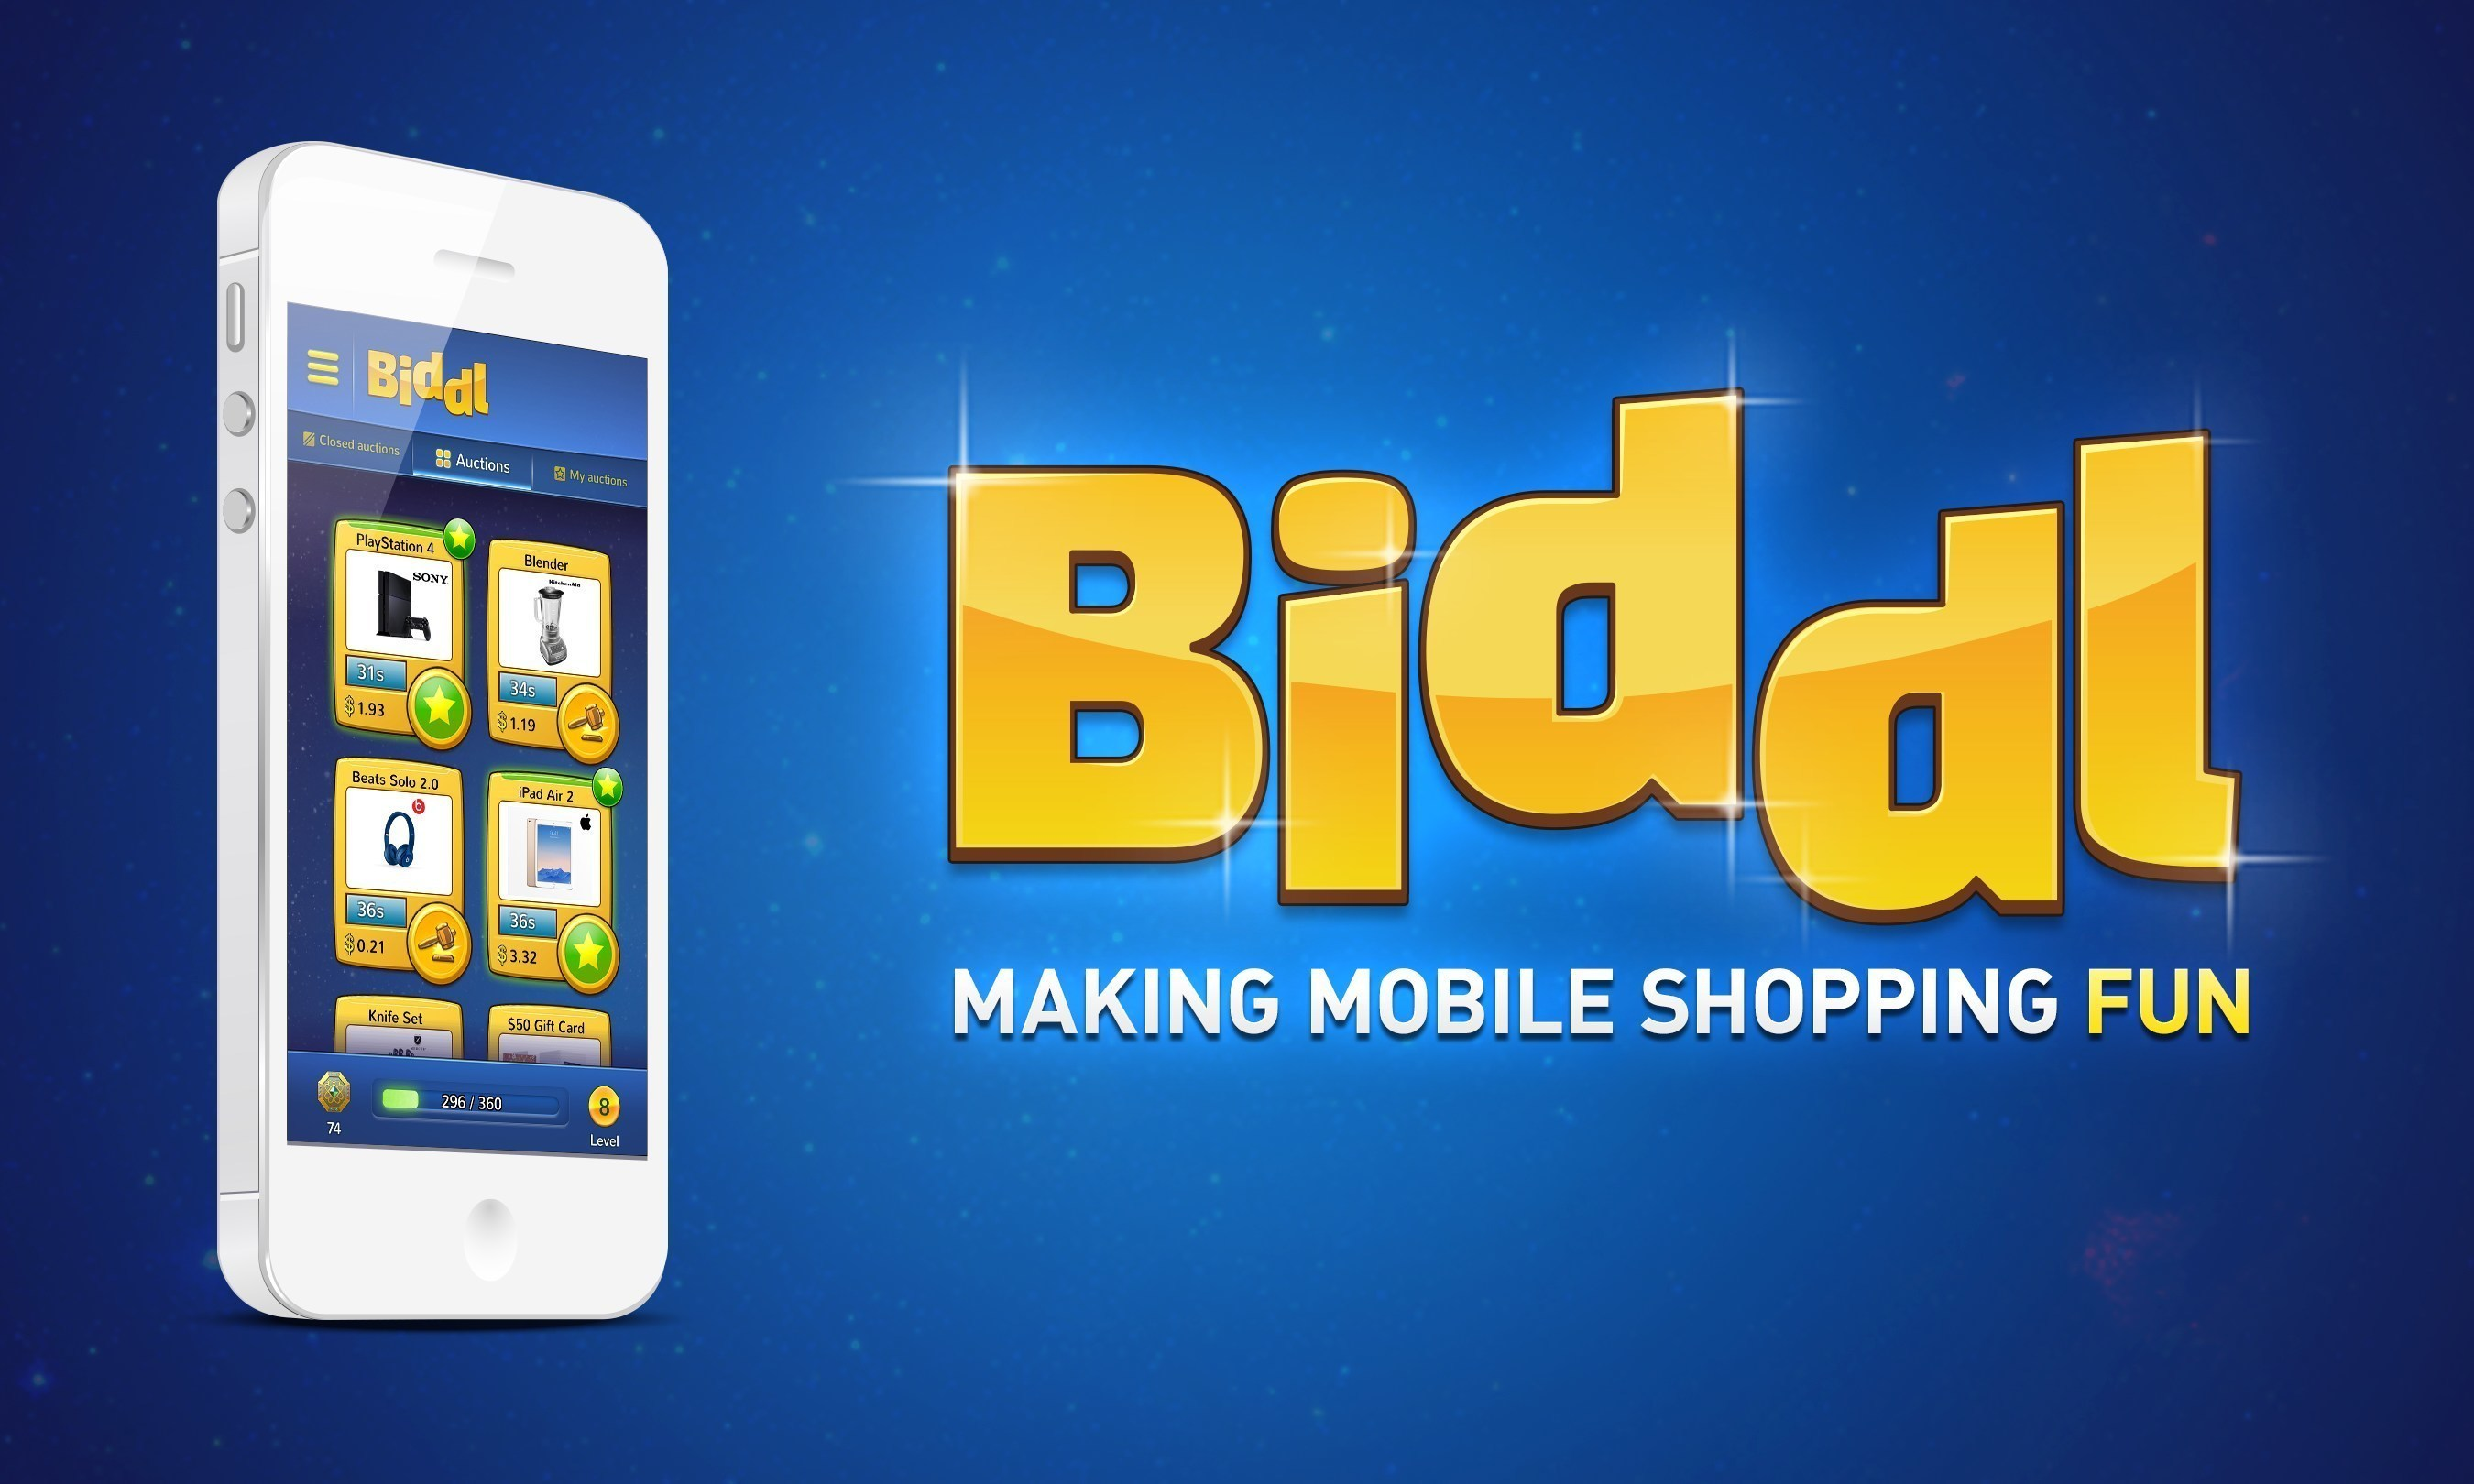 Biddl launches the world's first mobile-only shopping game app